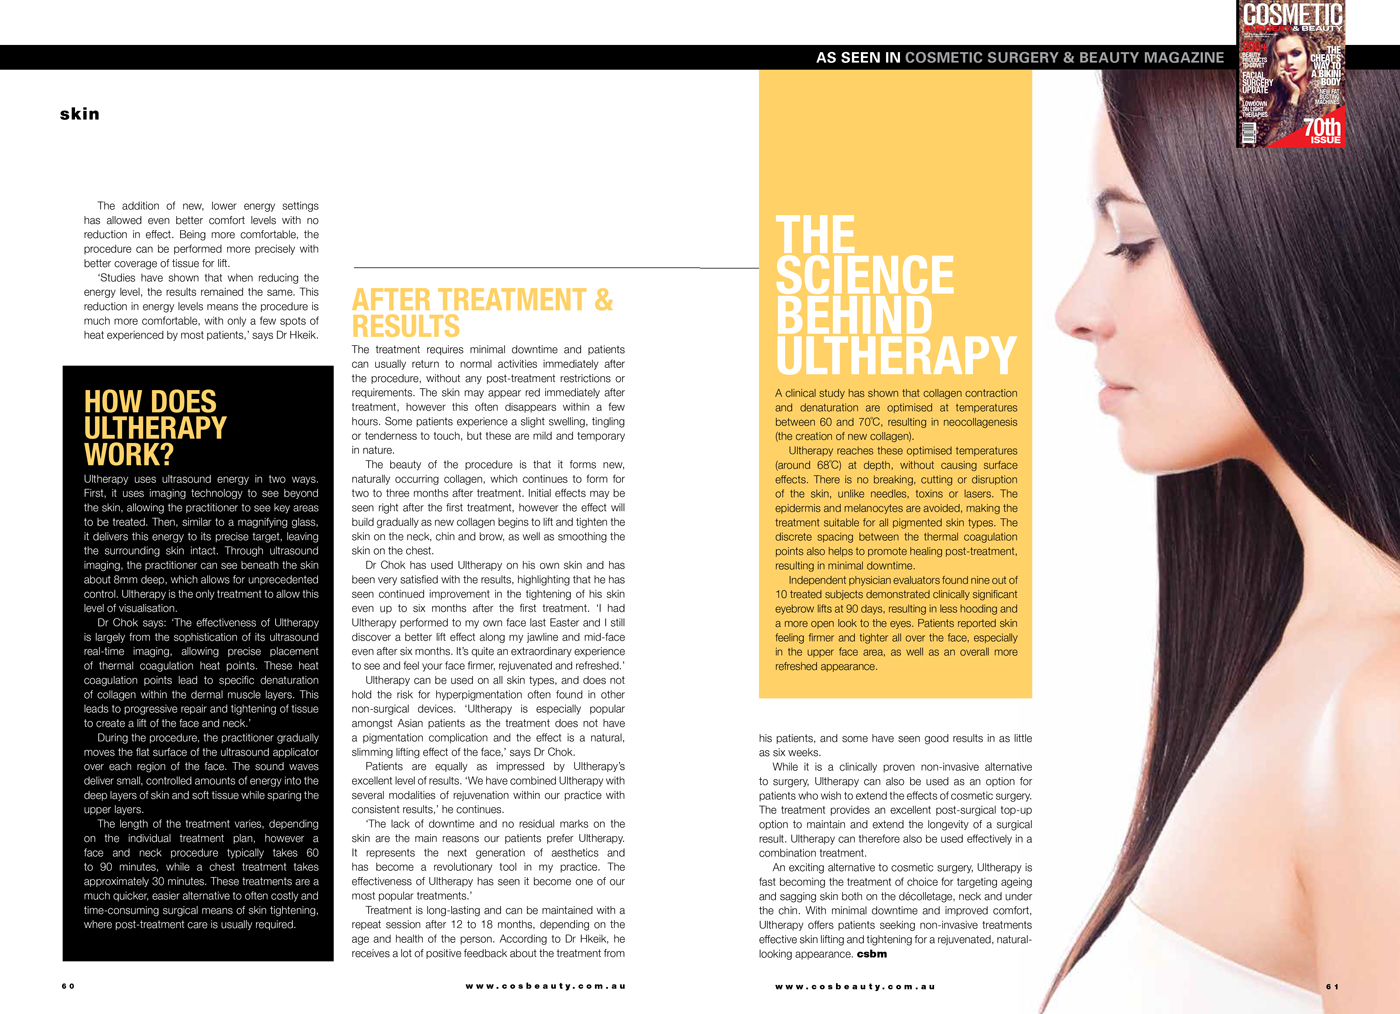 Ultherapy-2